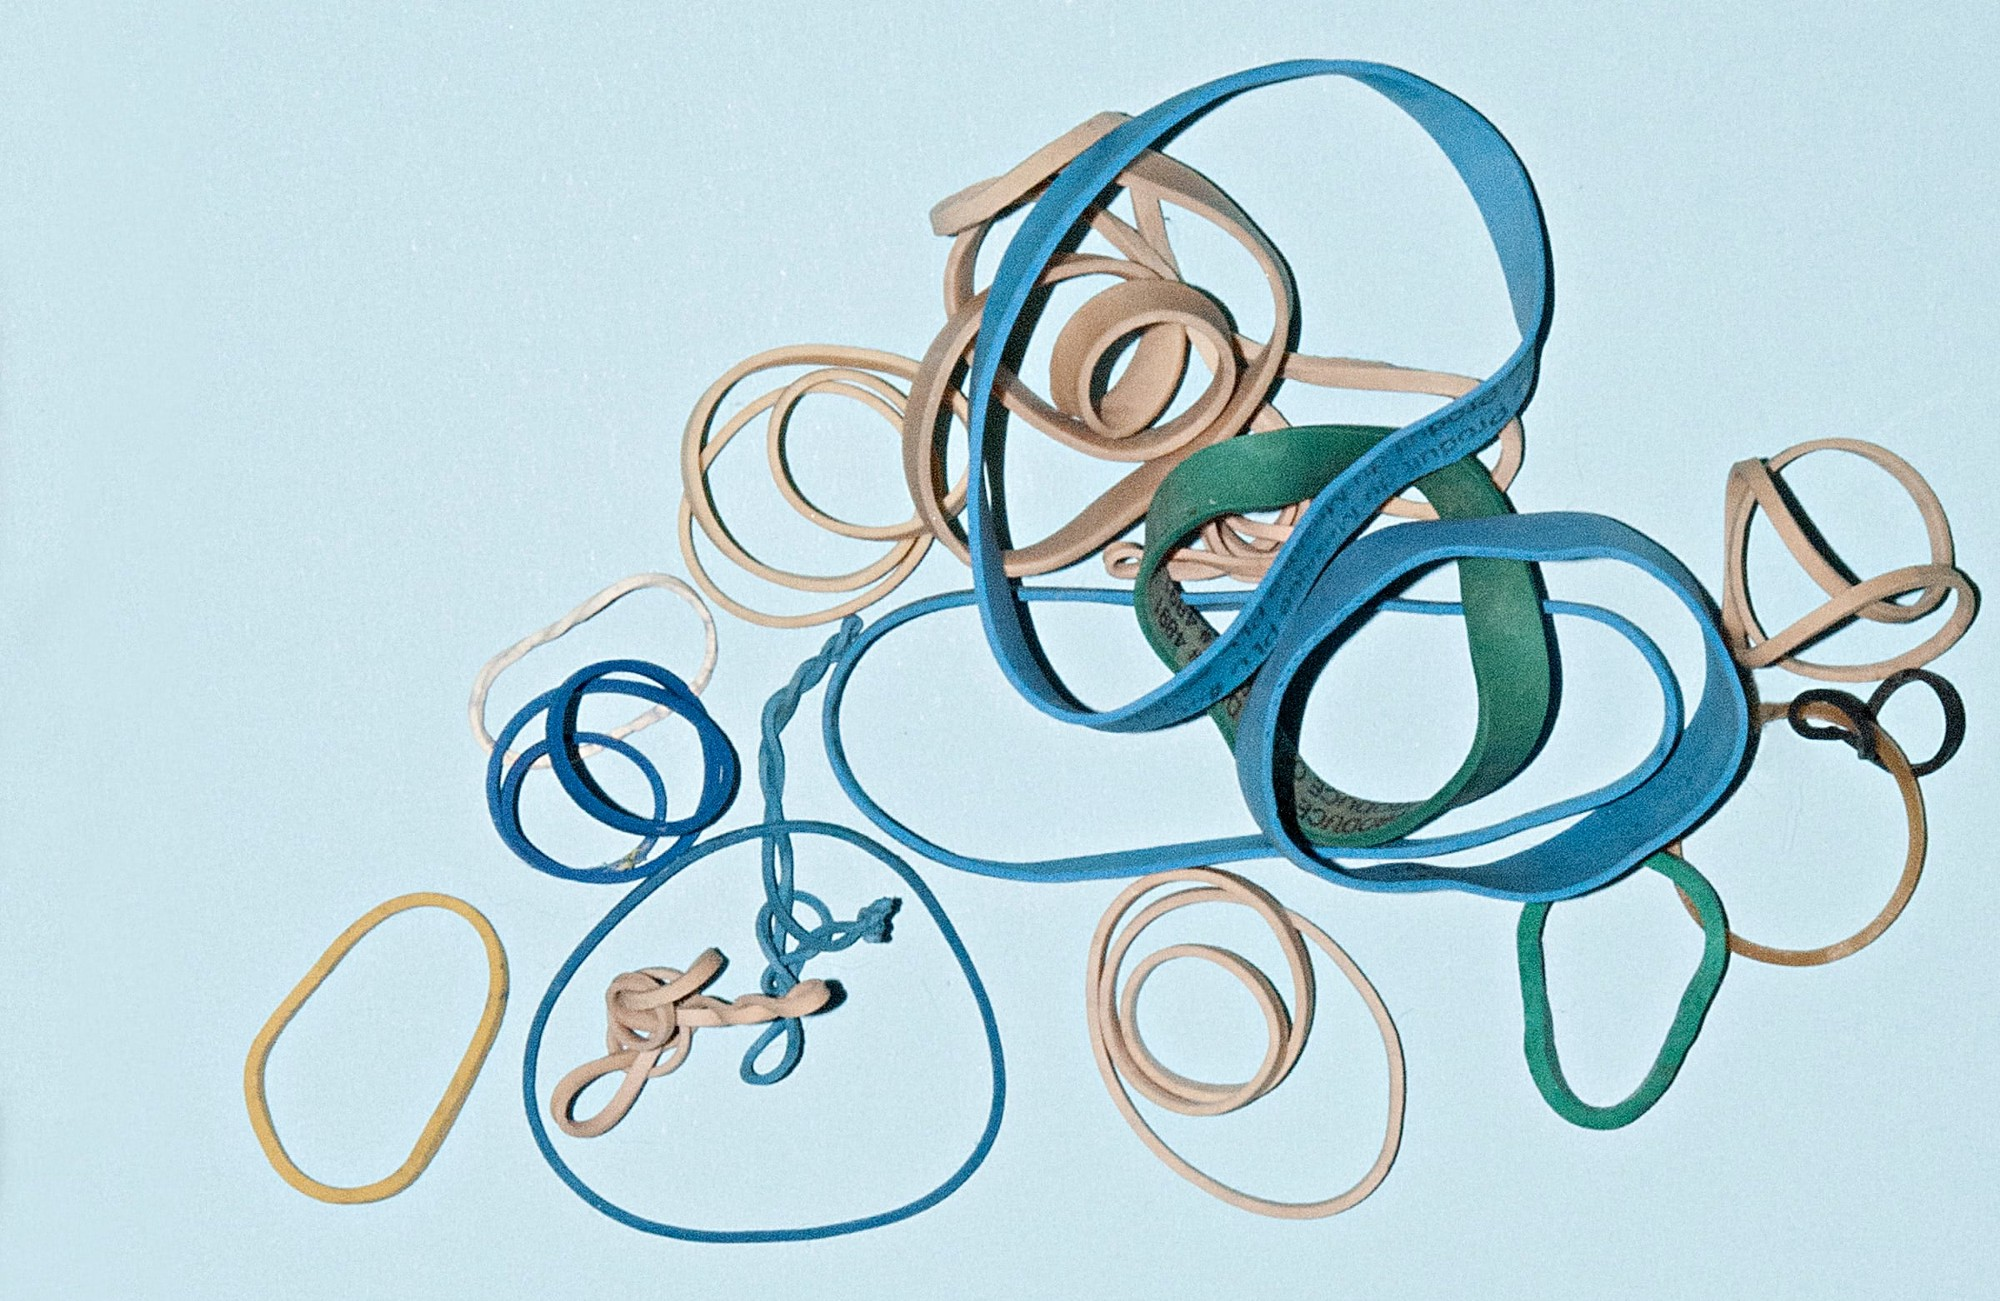 Lots of different circular rubber bands on a bright background thrown on top of each other. Some are twisted, others are nearly round.